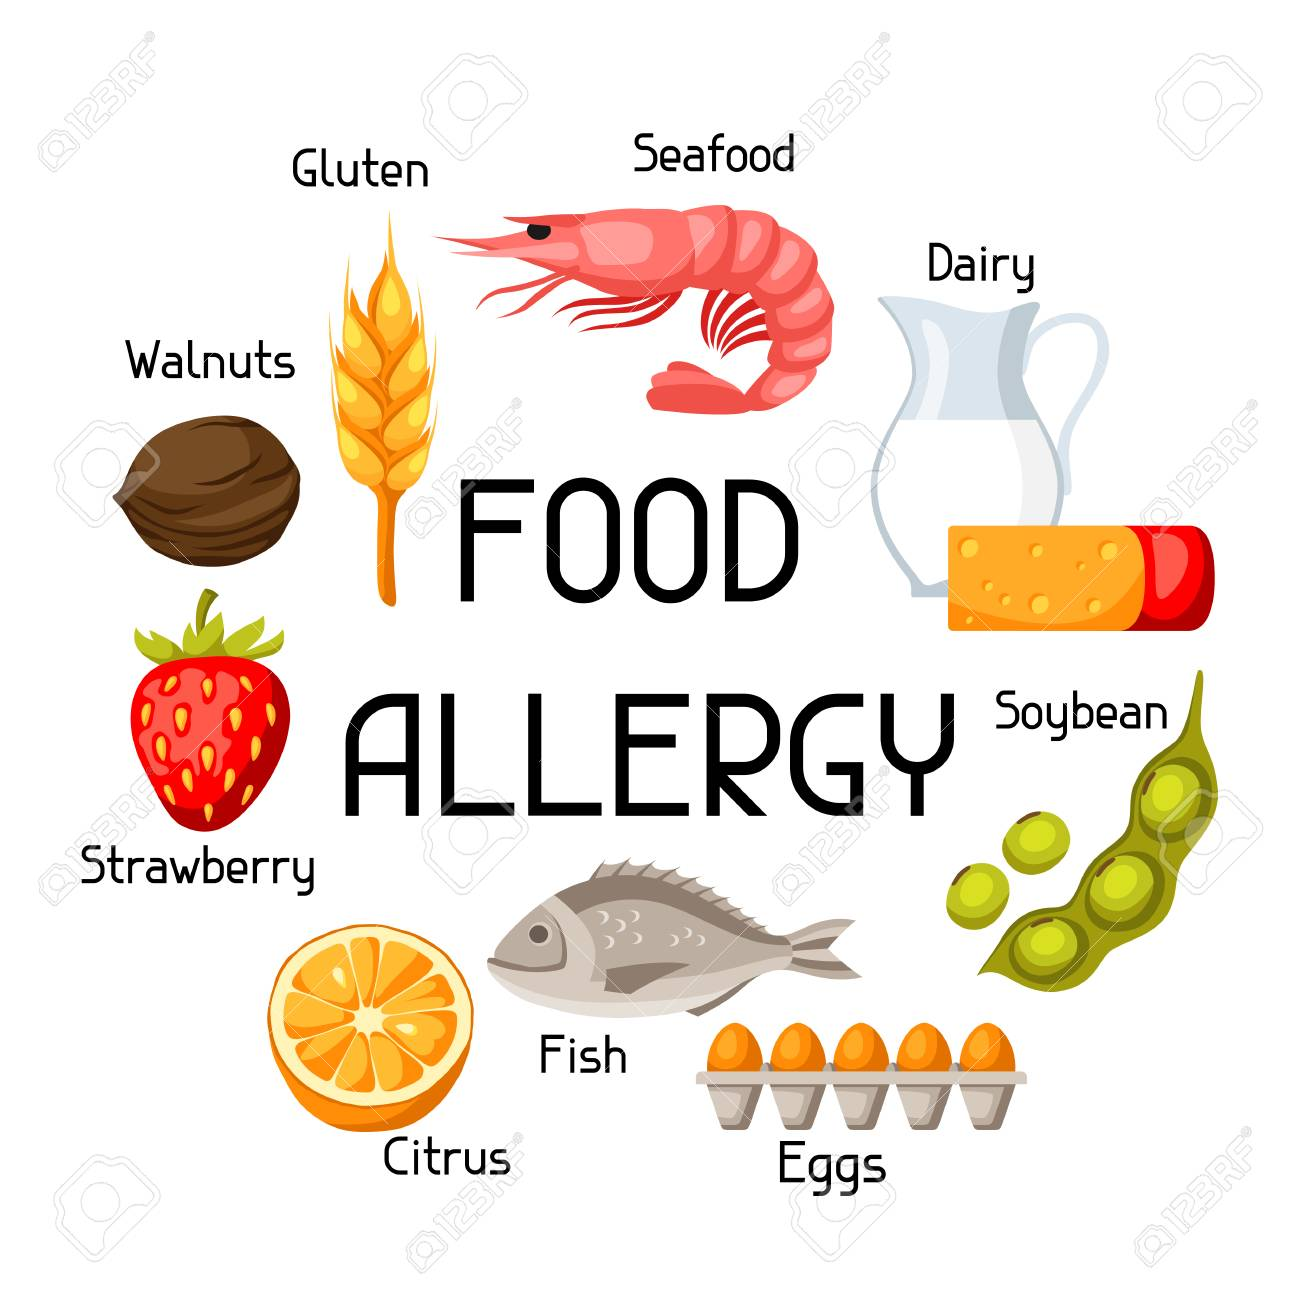 Food Allergies Clipart